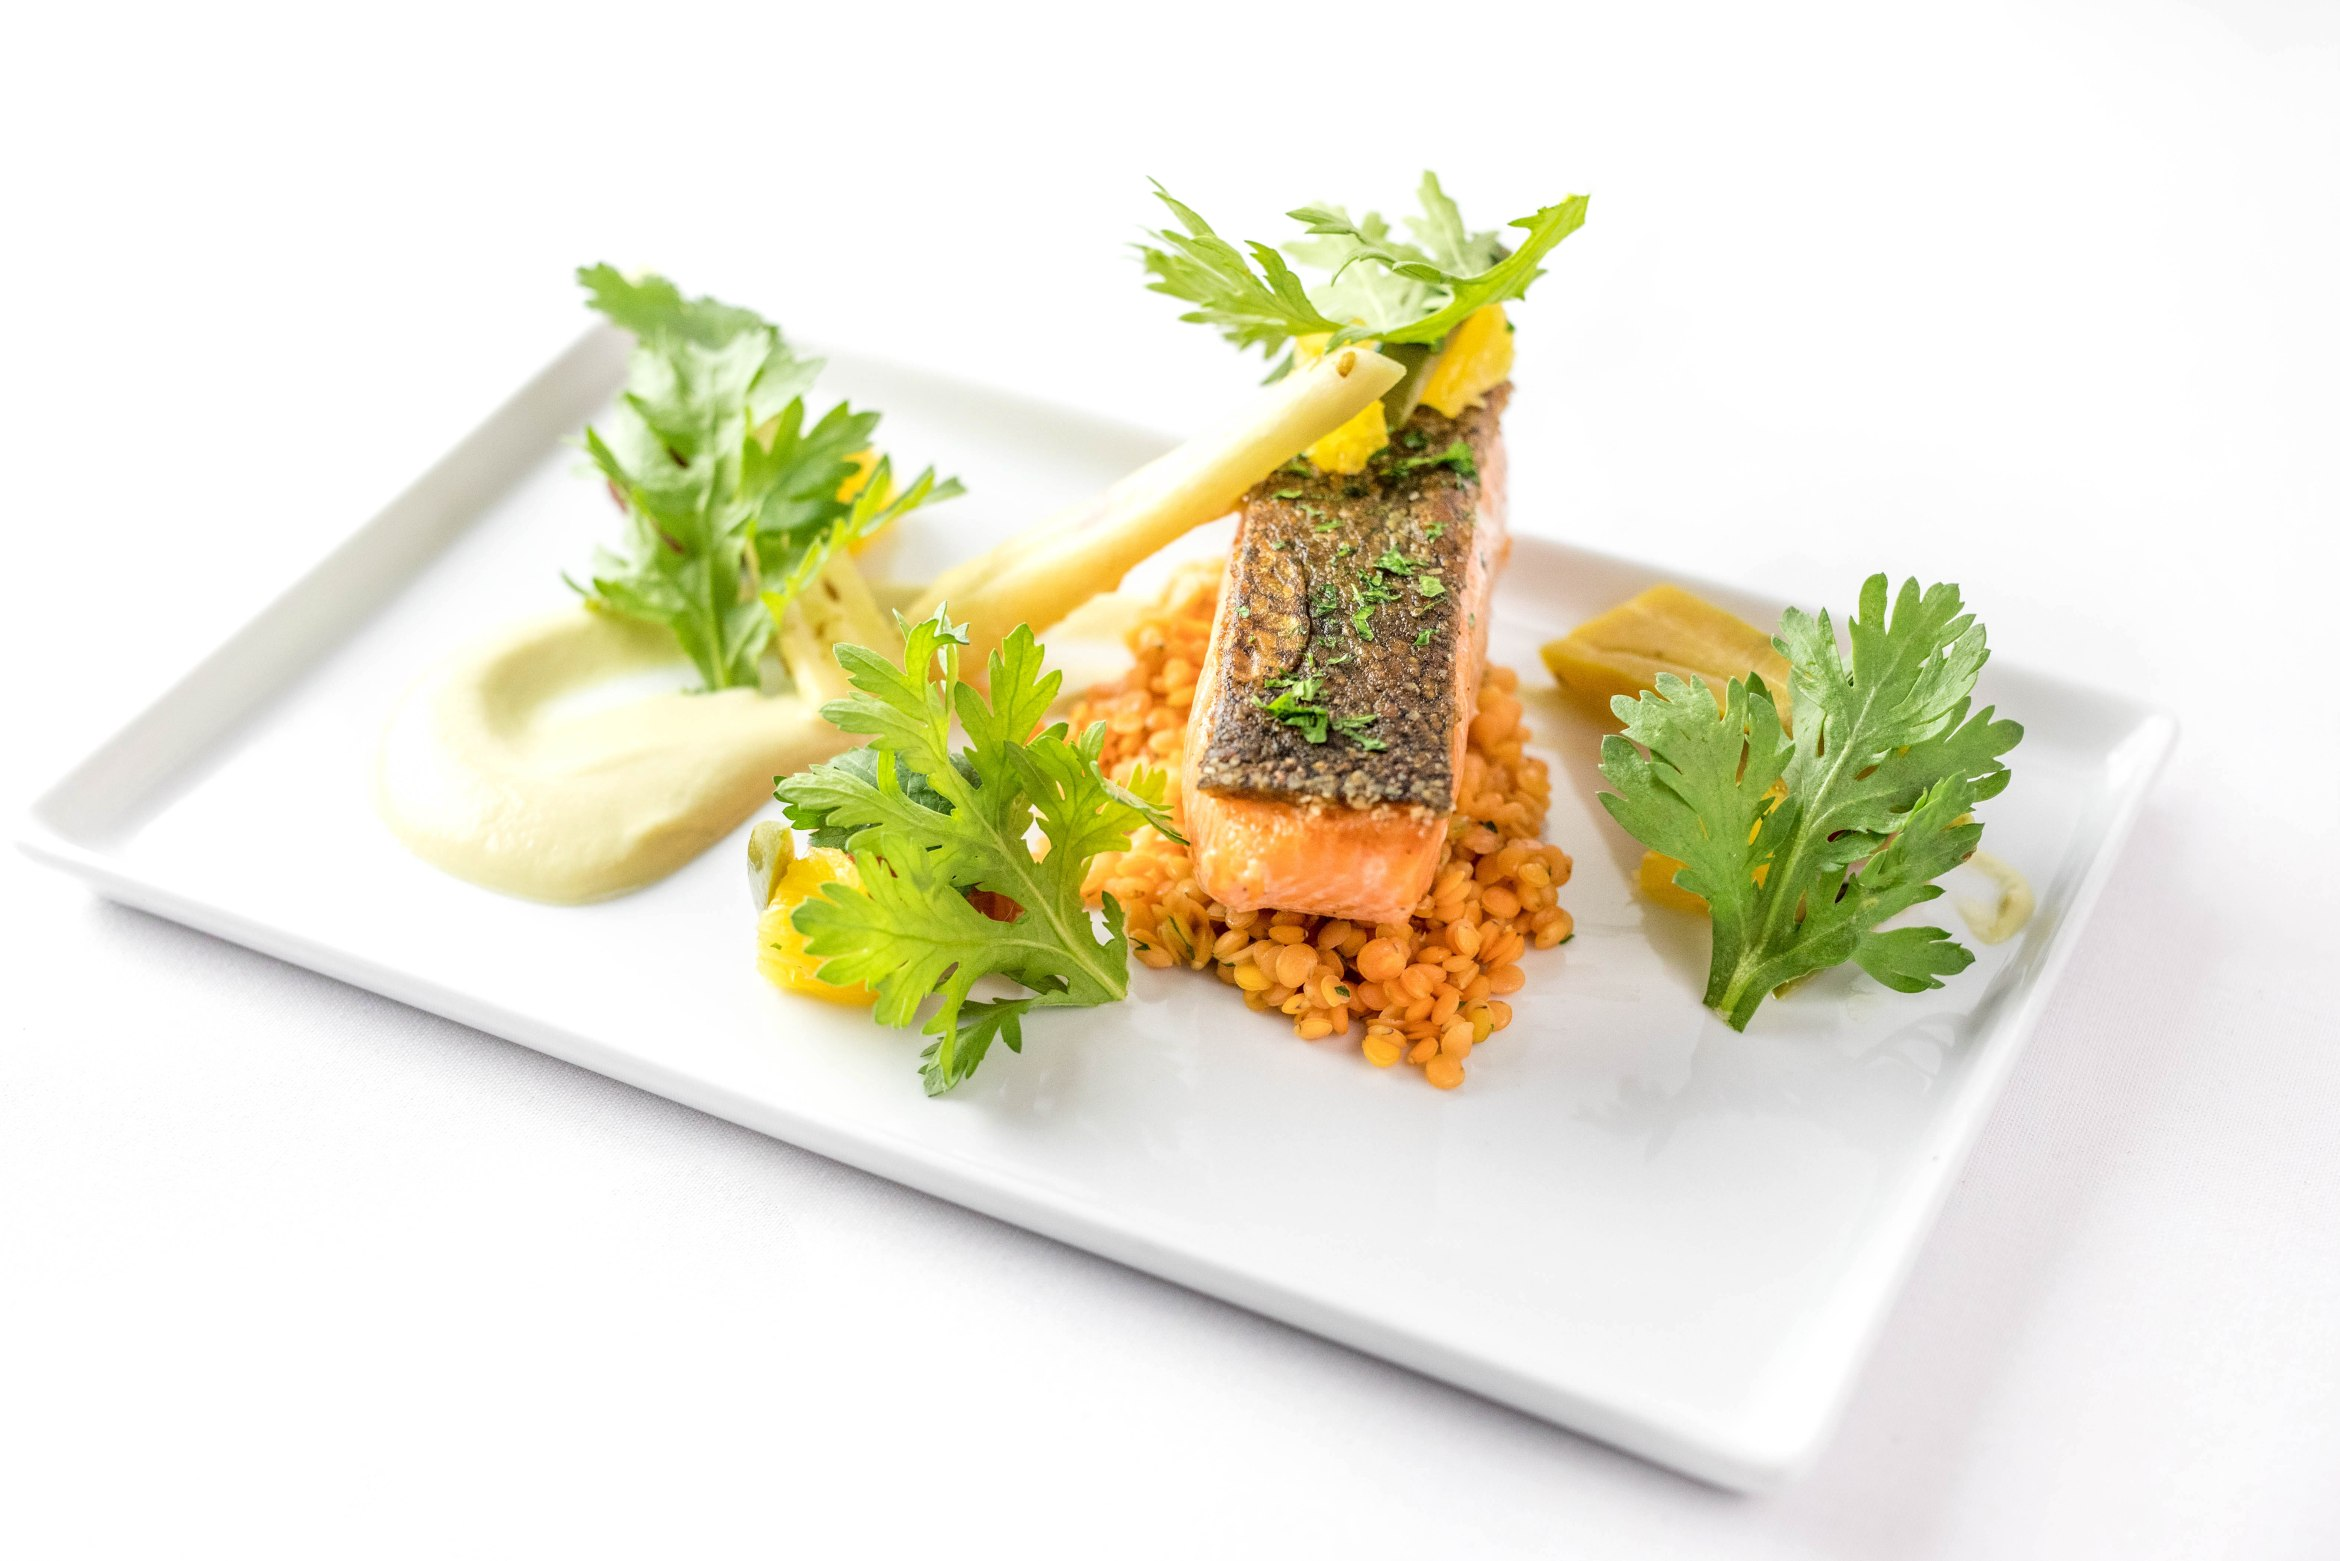 rectangle white dish with red lentils and a slice of cooked salmon aribella photography food pictures